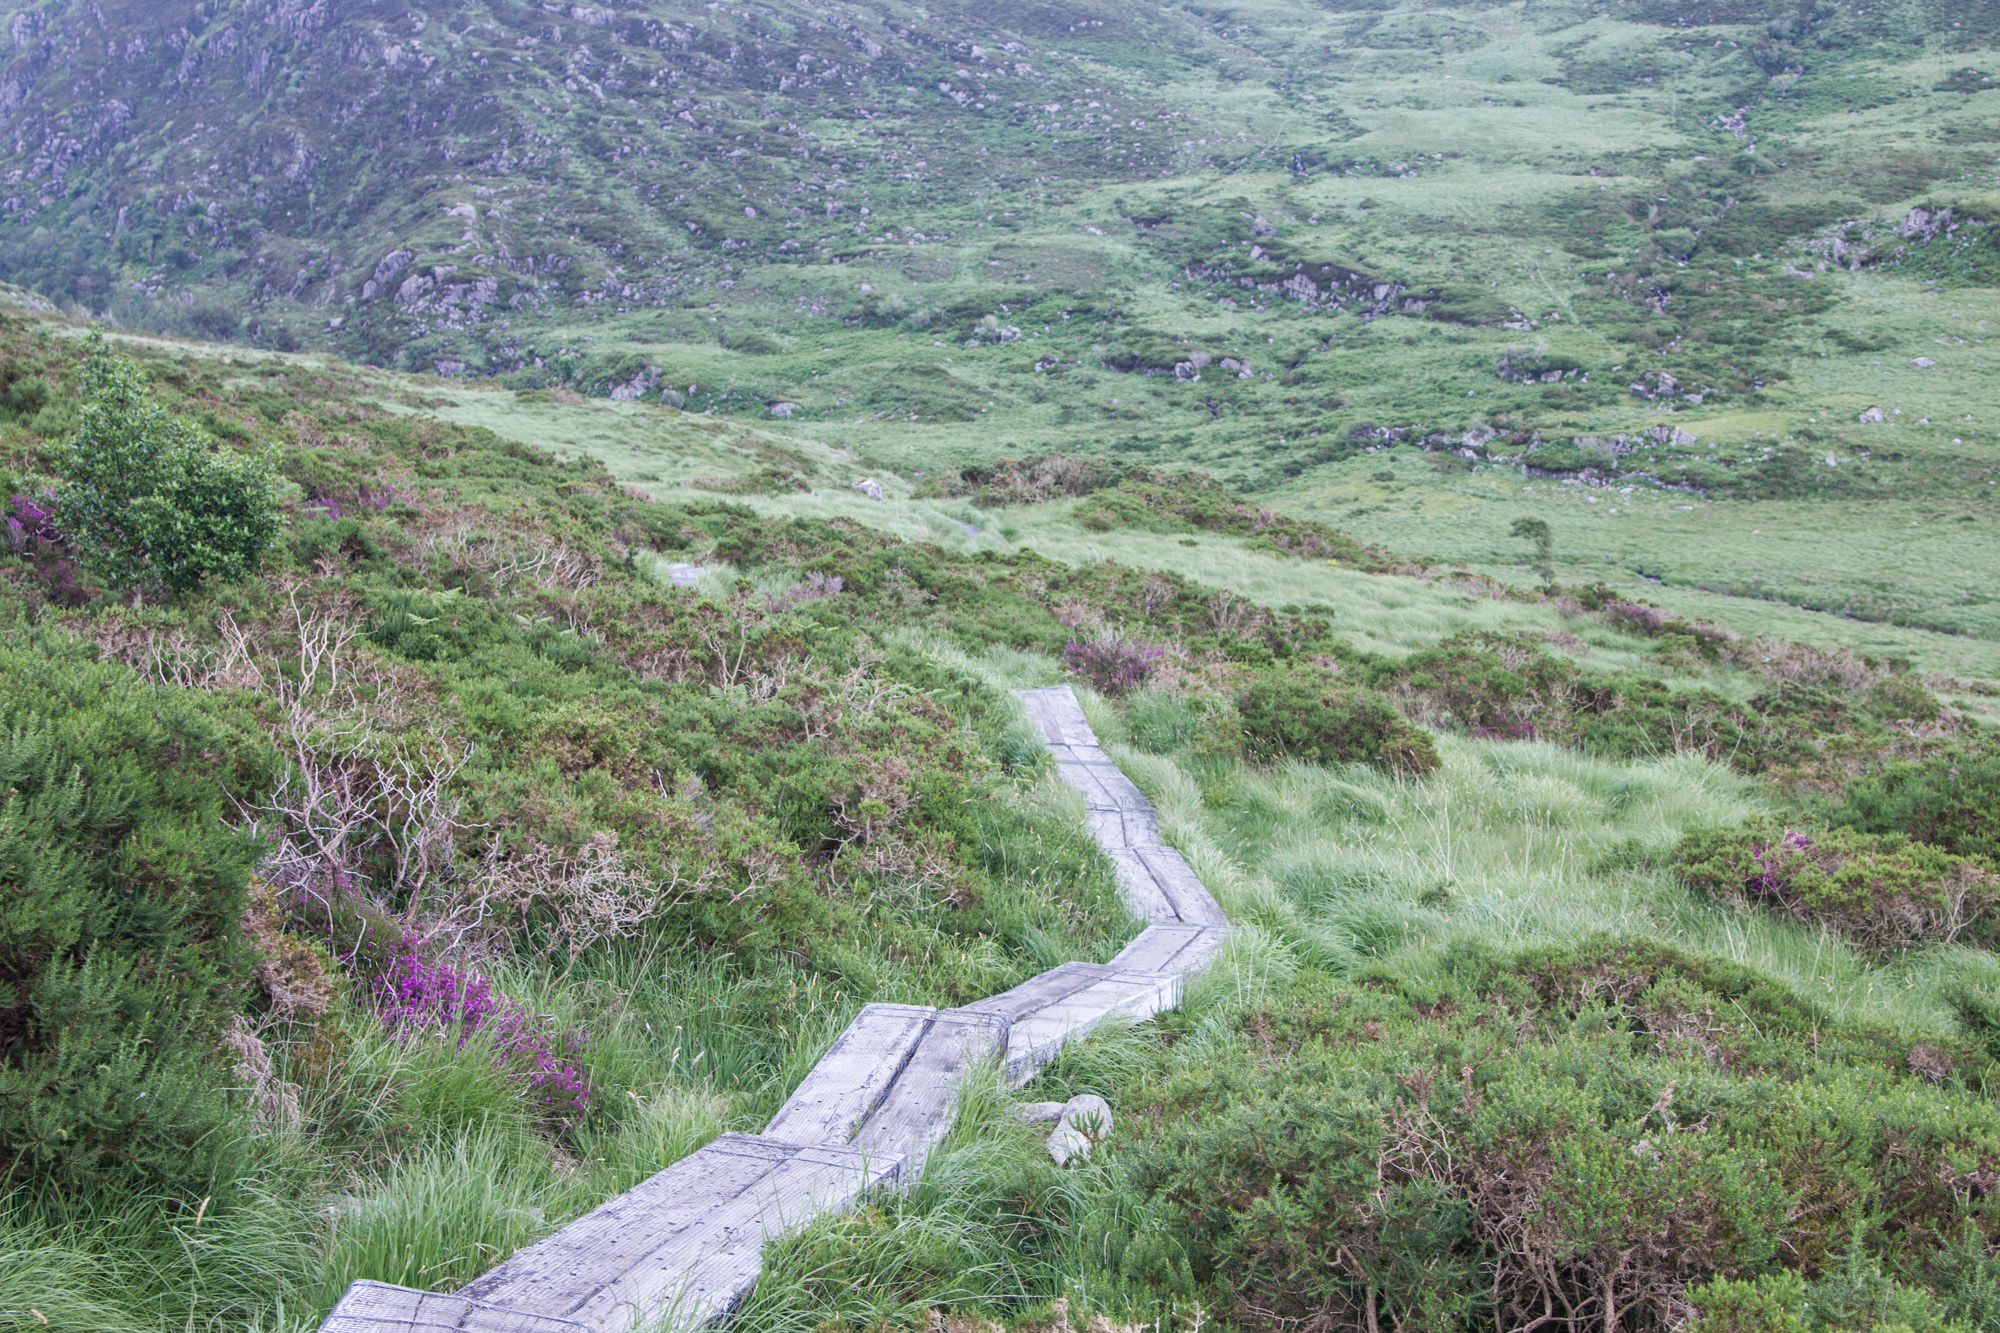 Wooden Path up Torc Mountain In Killarney National Park in Ireland surrounded by grass, plants, and purple flowers